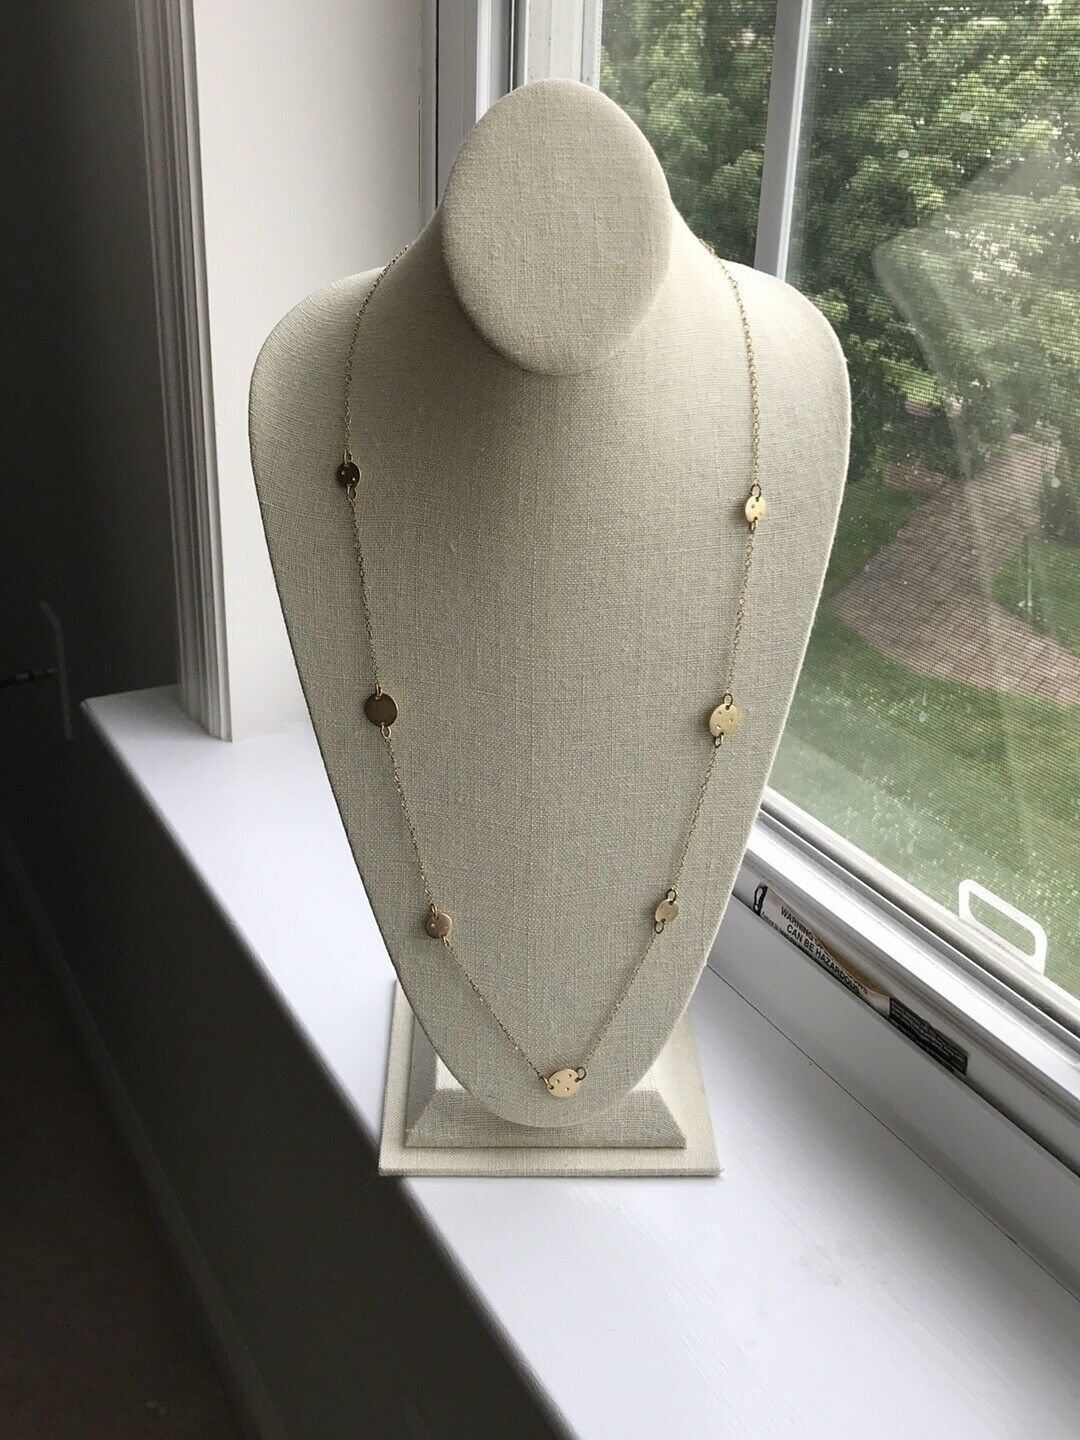 American Eagle Outfitters 15 in gold tone necklace with small round circles